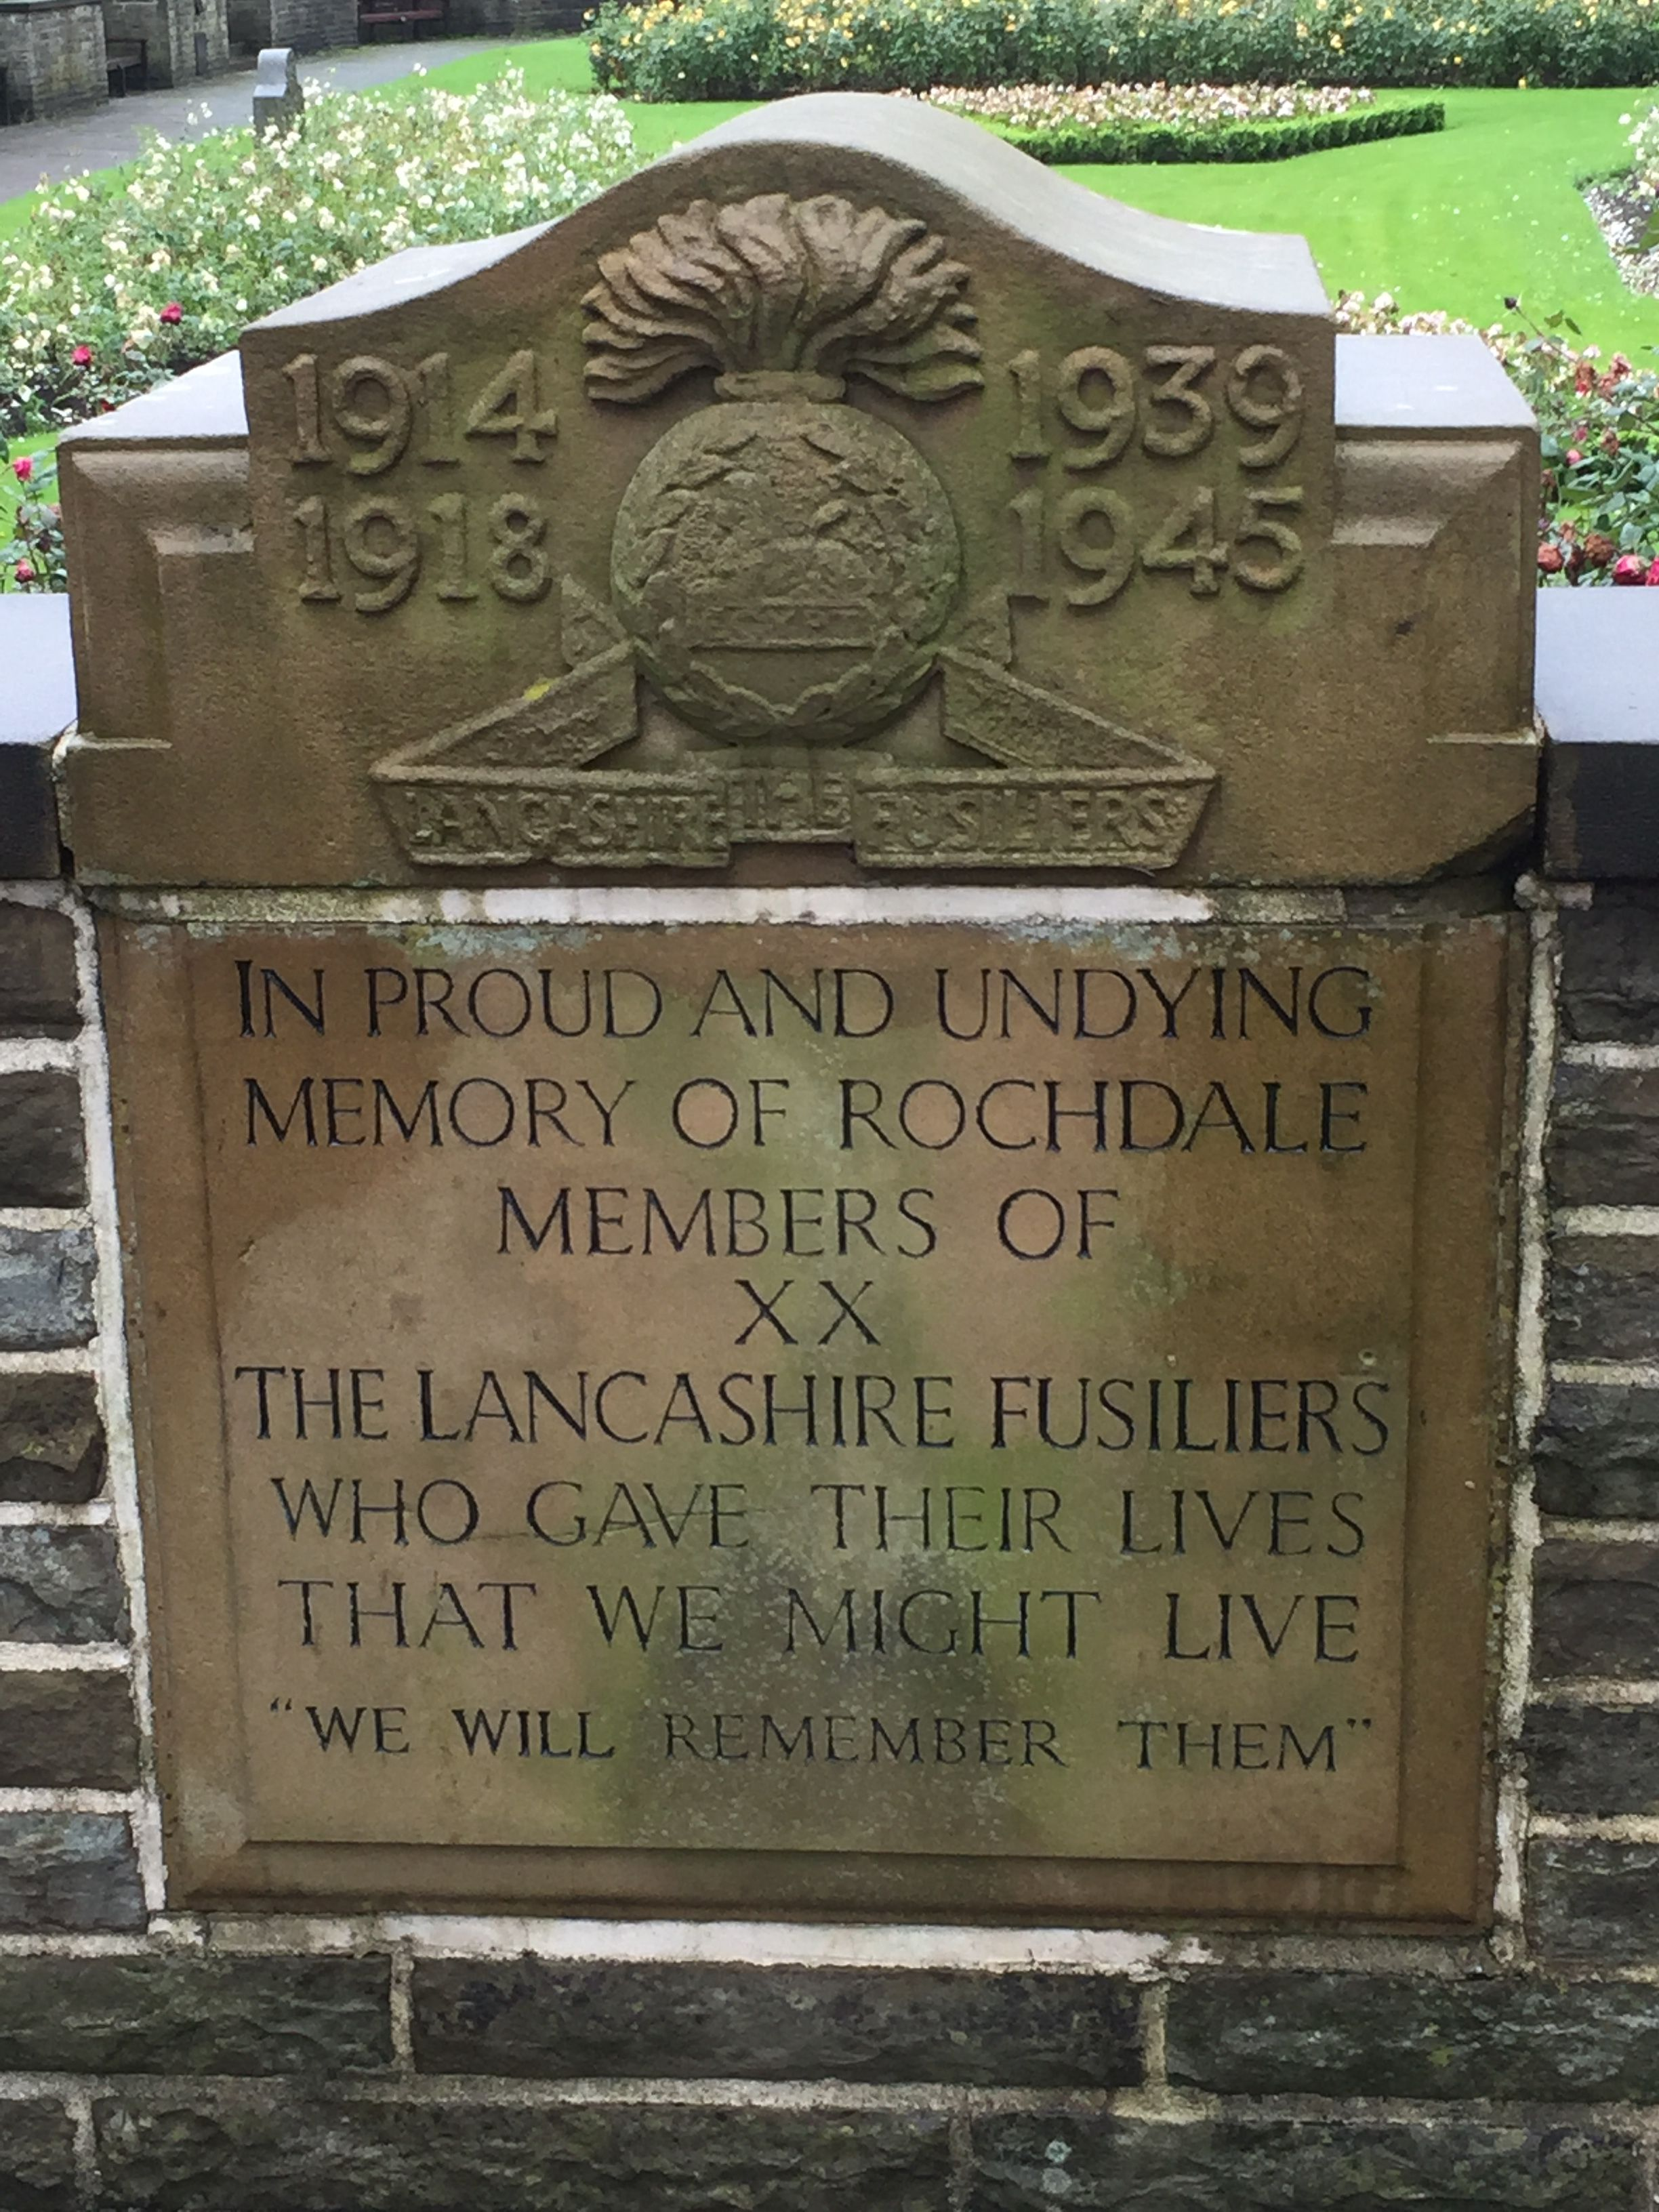 Memorial to Rochdale members of the Lancashire Fusiliers, Memorial ...